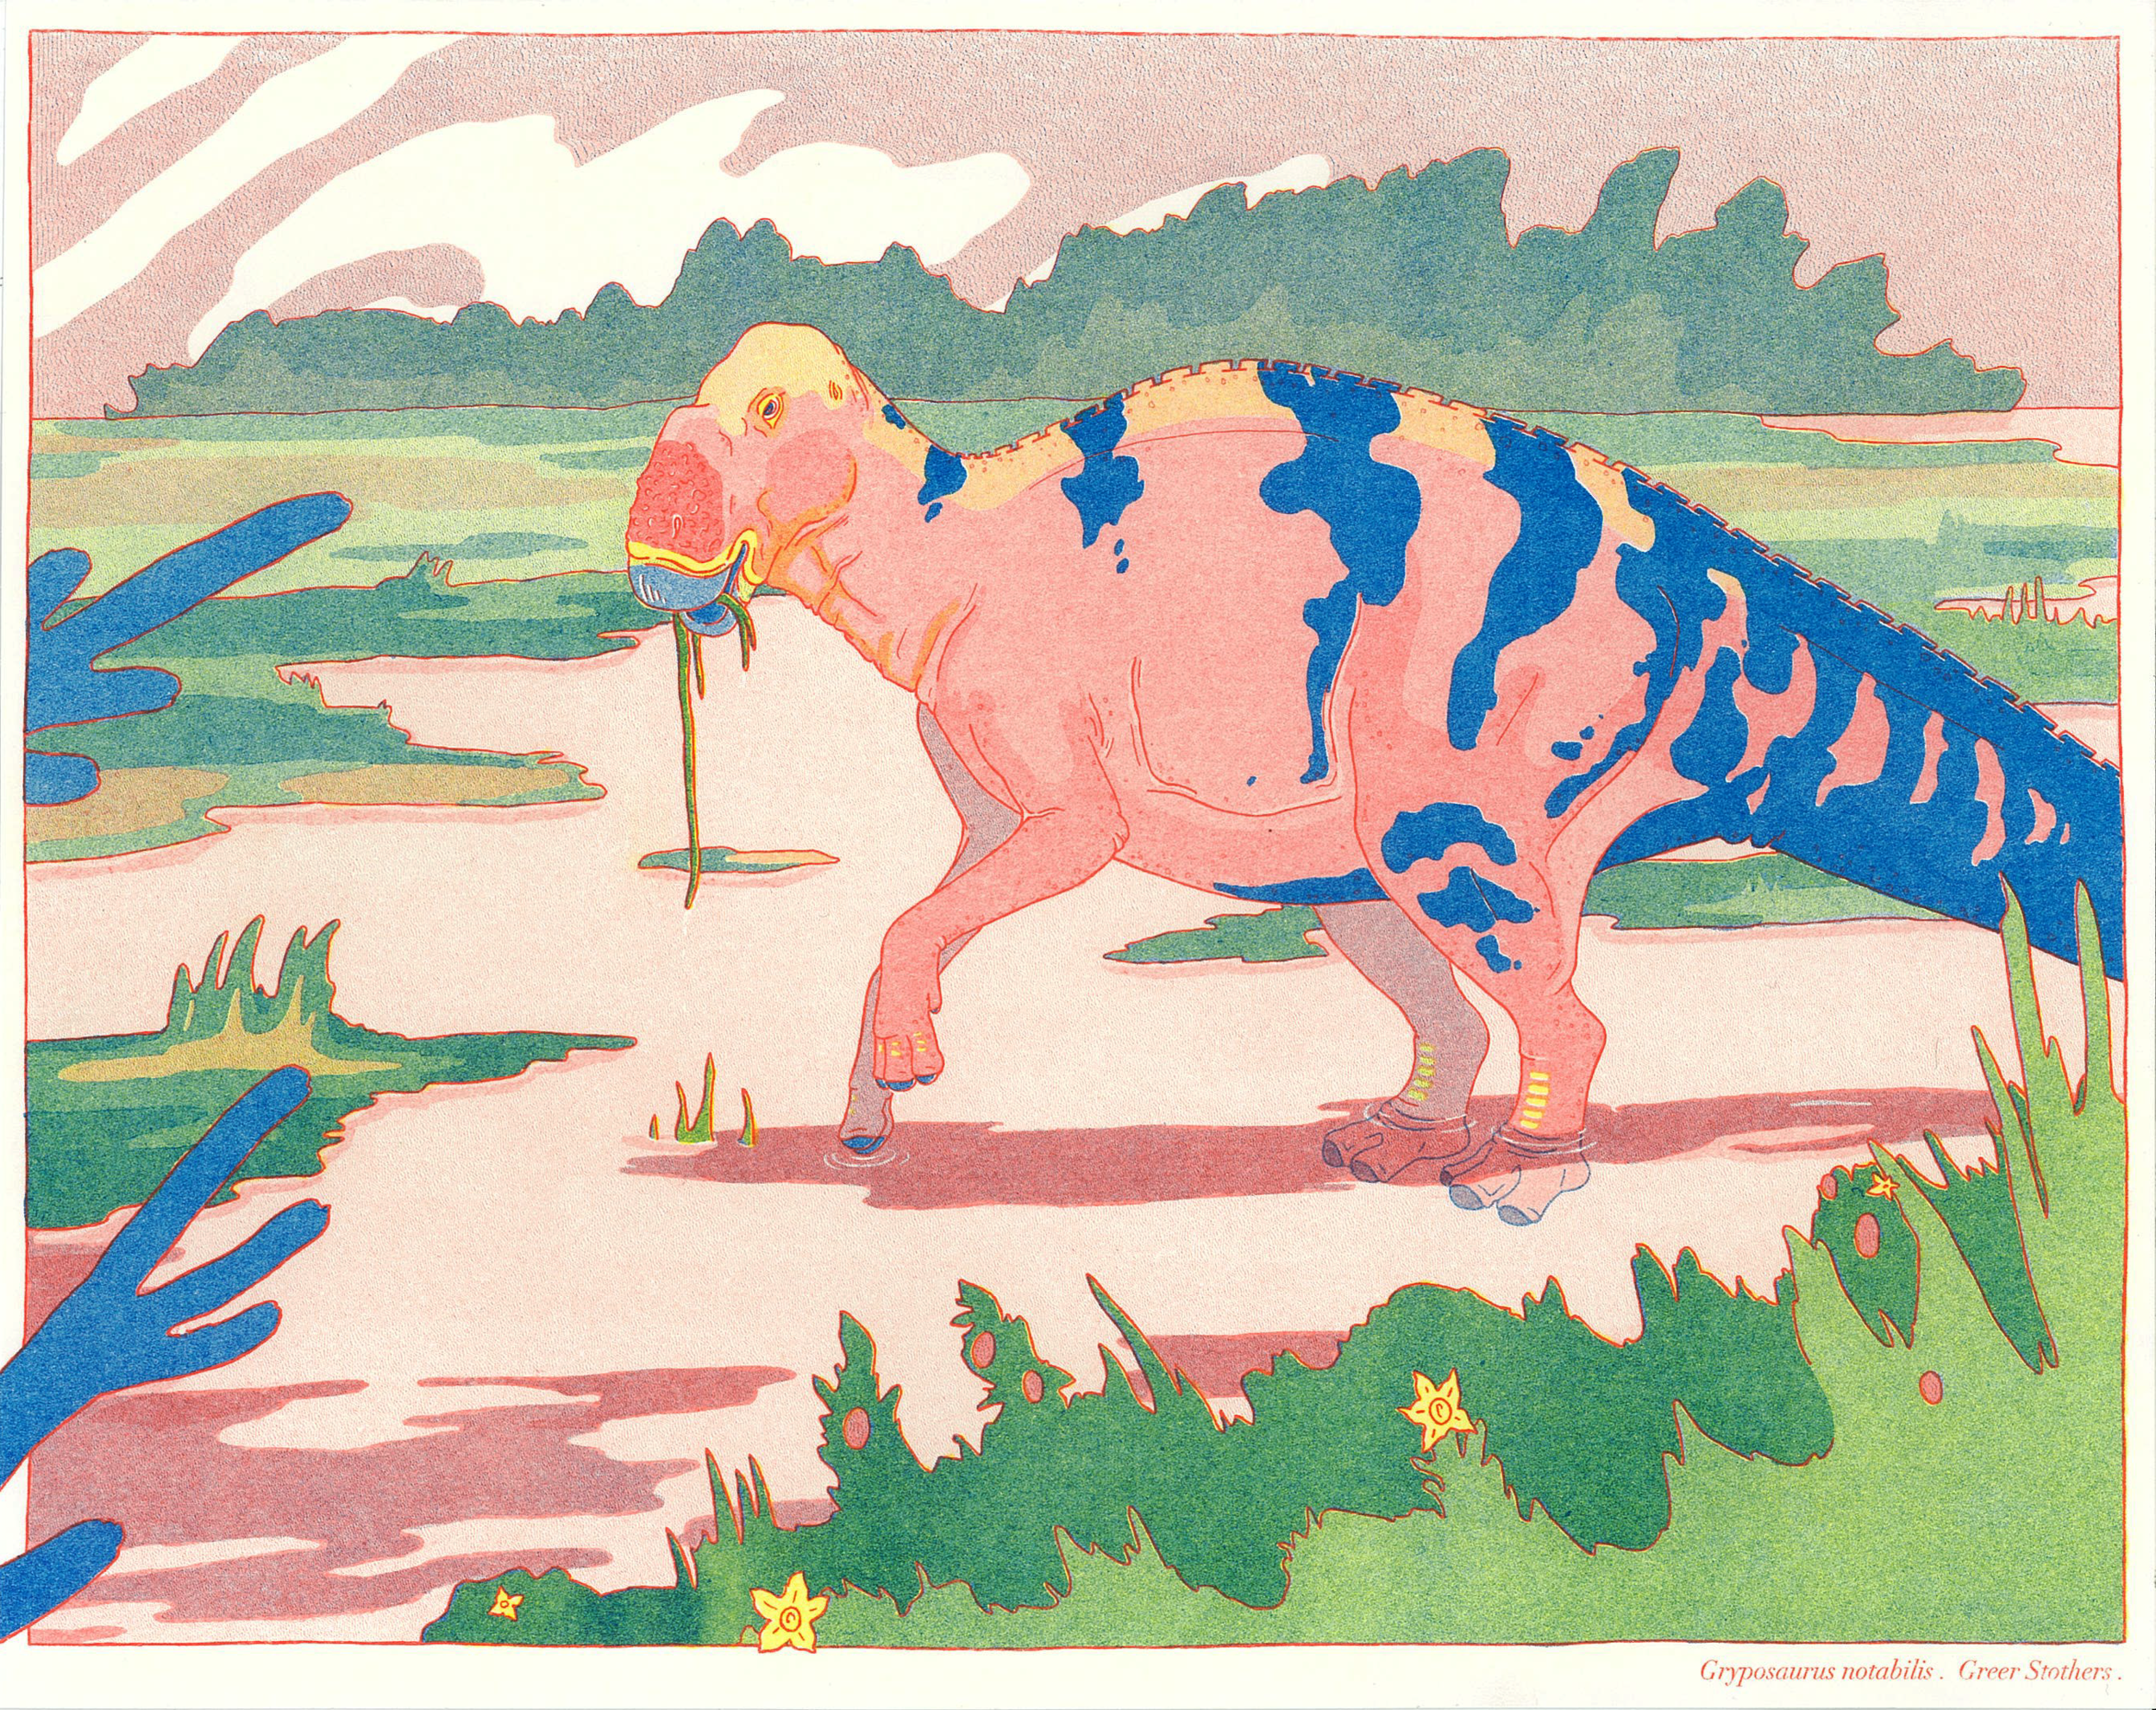 Gryposaurus Illustration done for the ROM research project